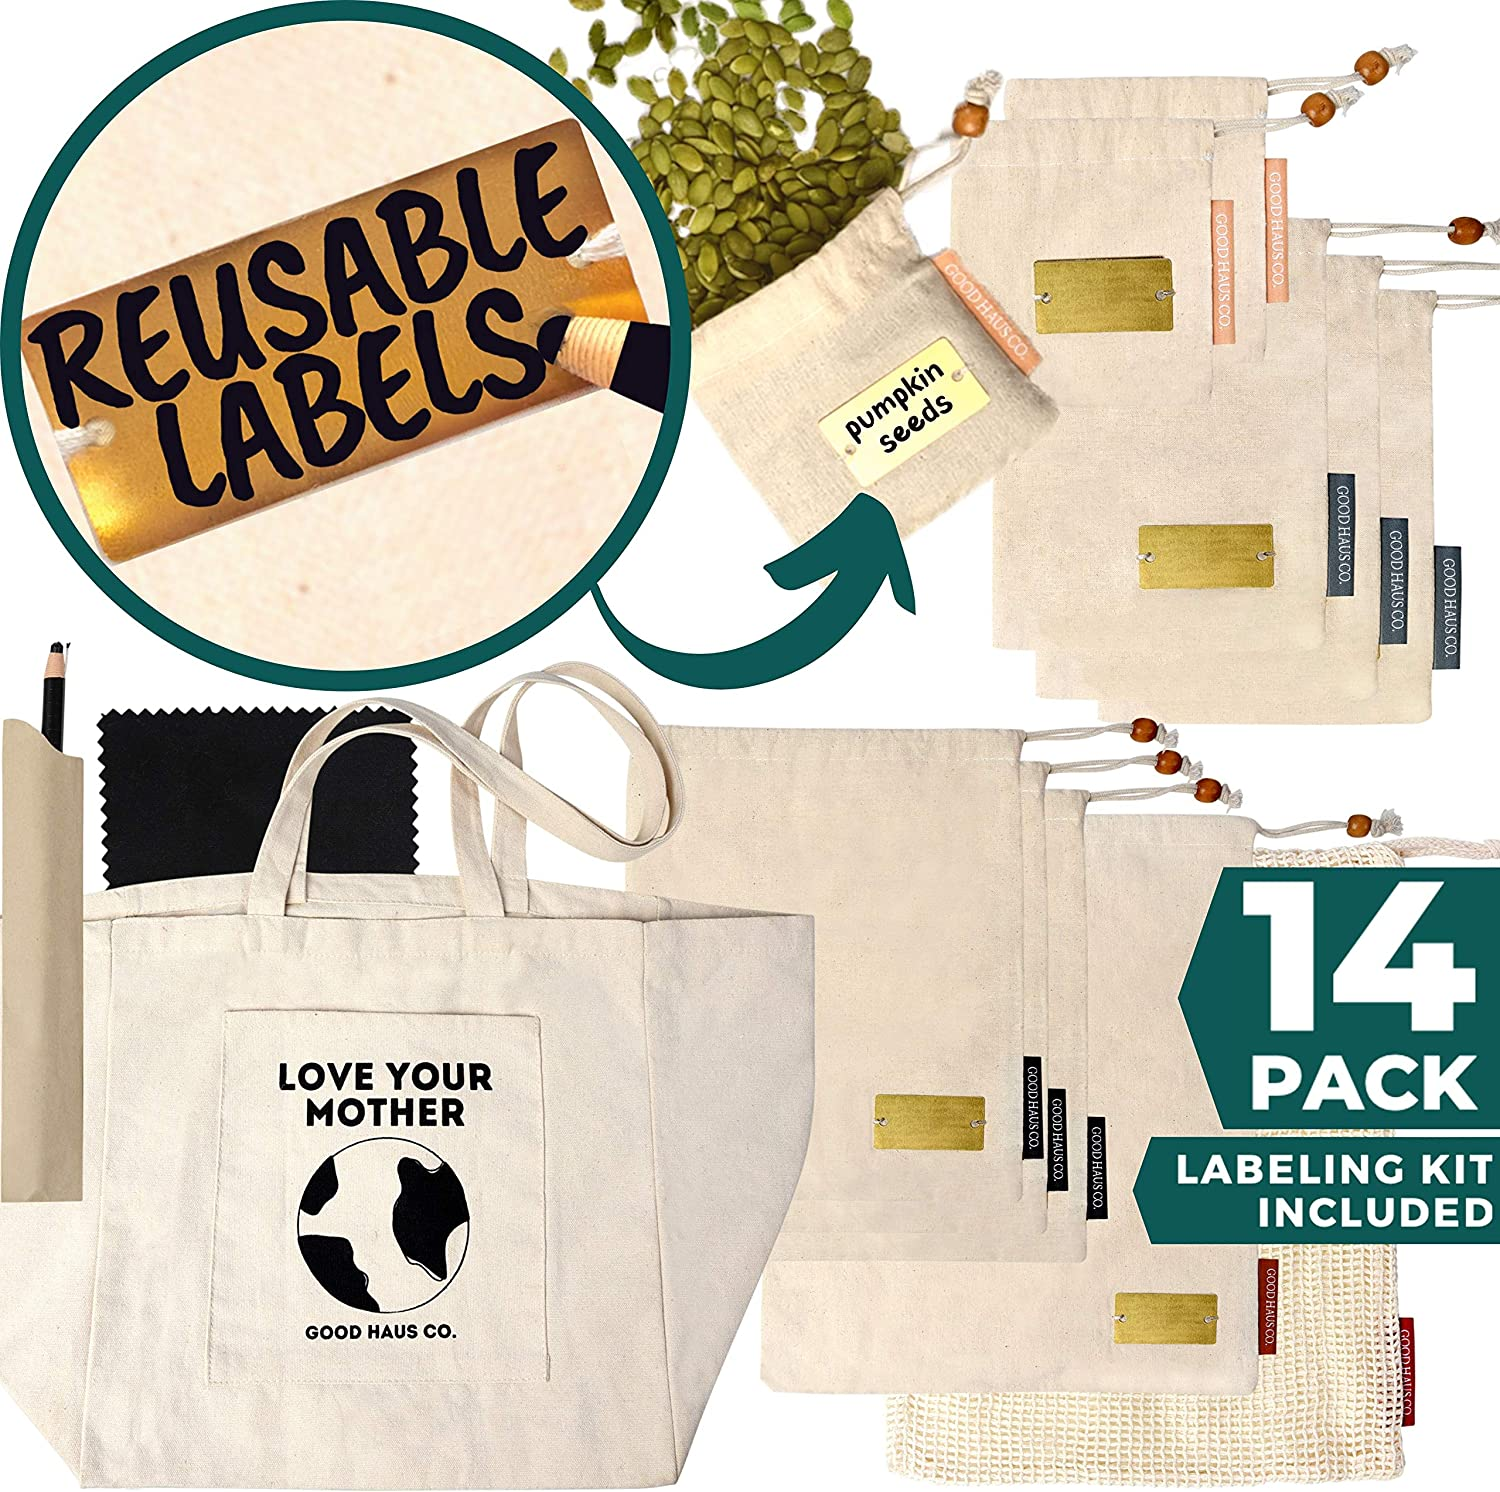 Eco friendly kitchen products: reusable bags